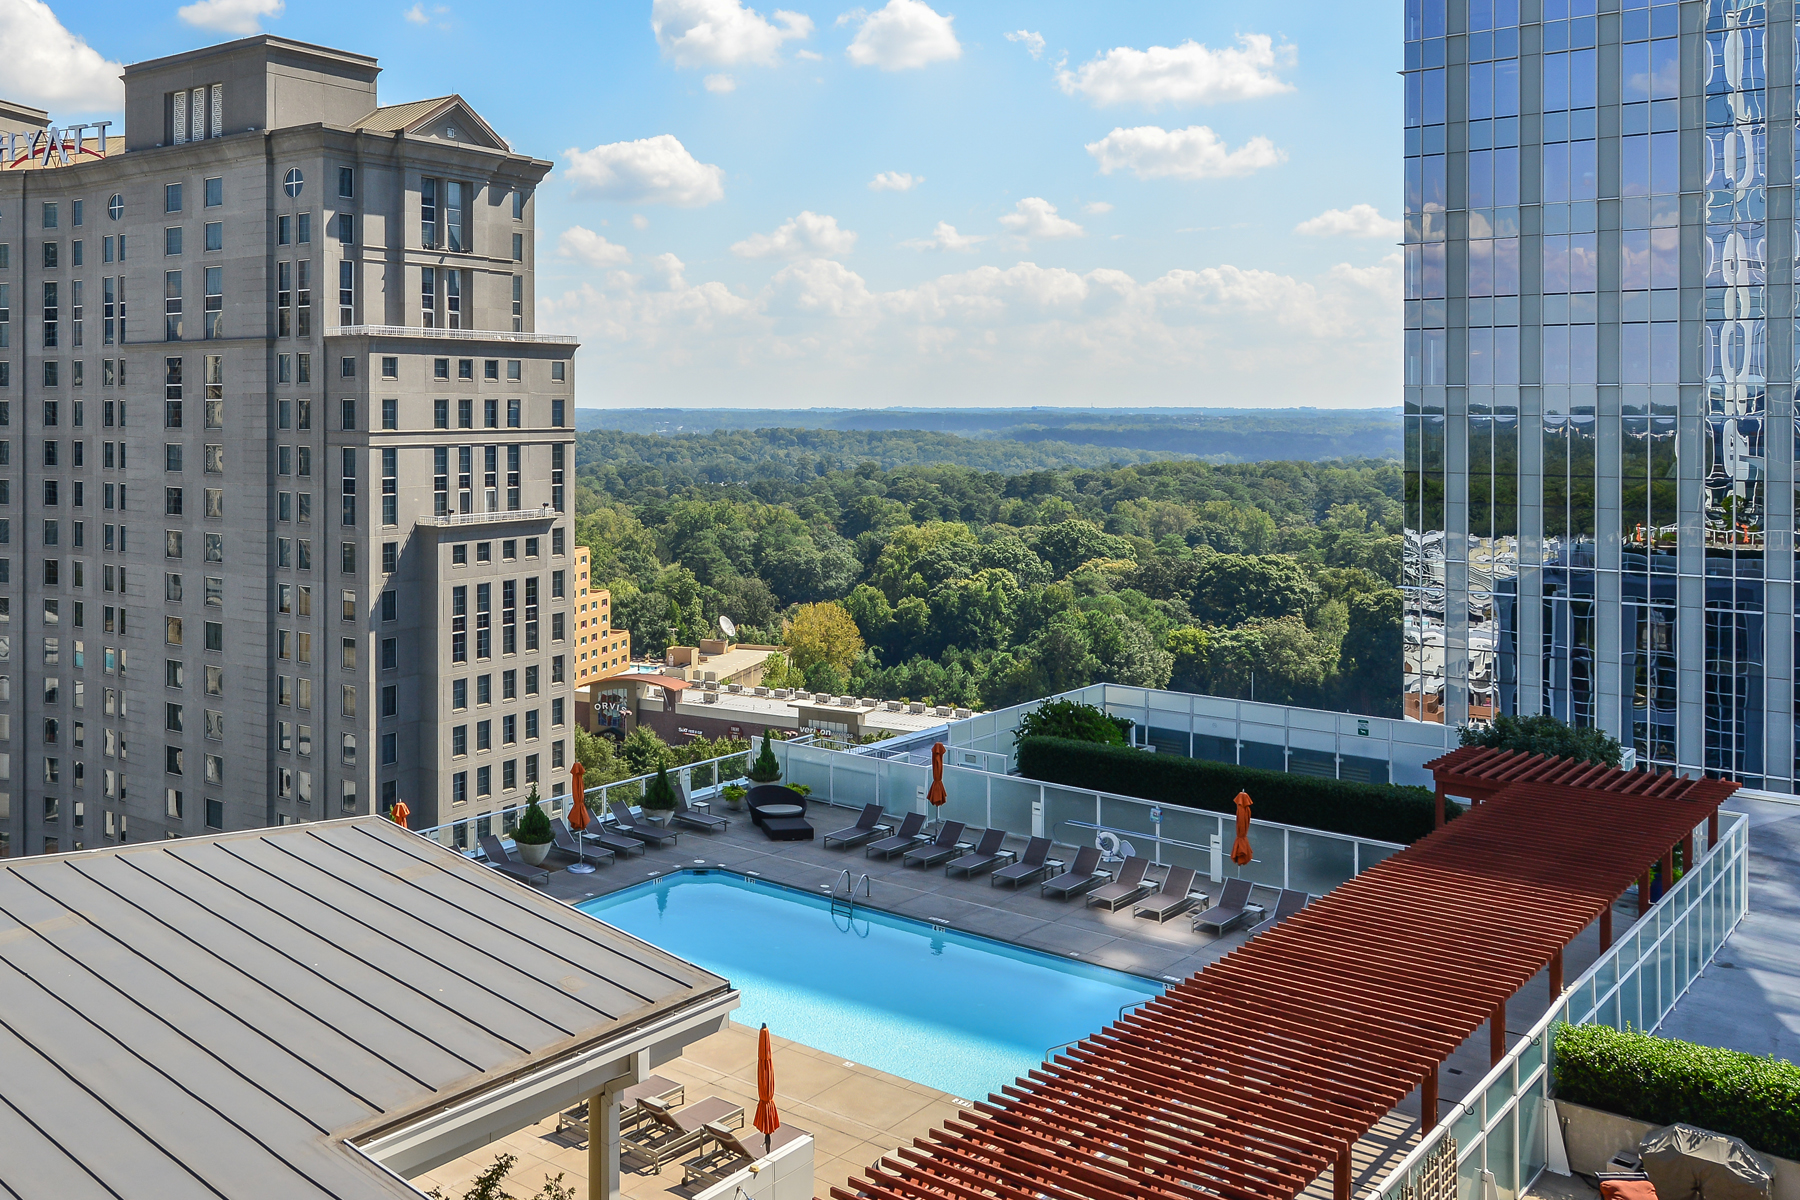 Condominium for Sale at Phenomenal Terminus Condo With Breathtaking Skyline Views 3325 Piedmont Road NE Unit 1709 Atlanta, Georgia, 30305 United States